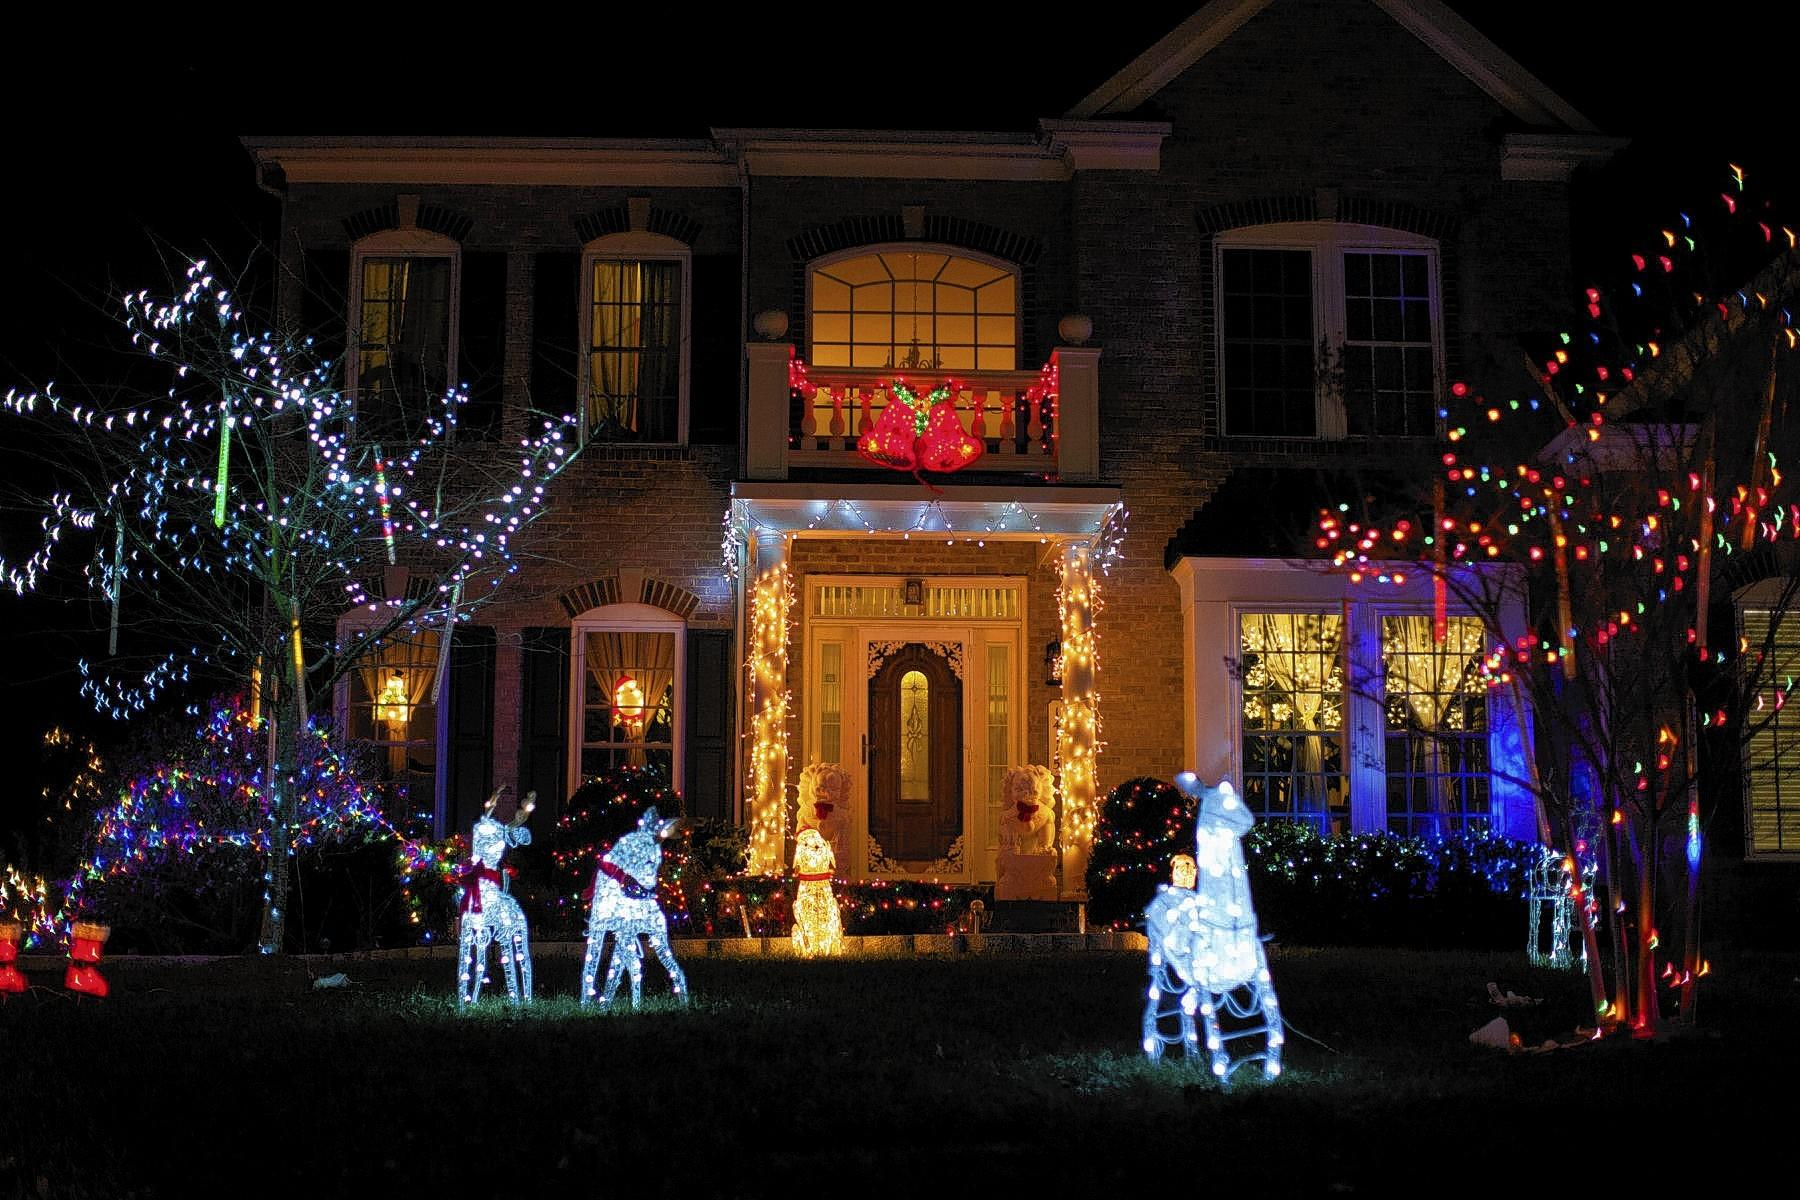 Judges awarded first-place in the Holiday Spritit Decorating contest to the Luong's home at 14115 Downdale Drive.